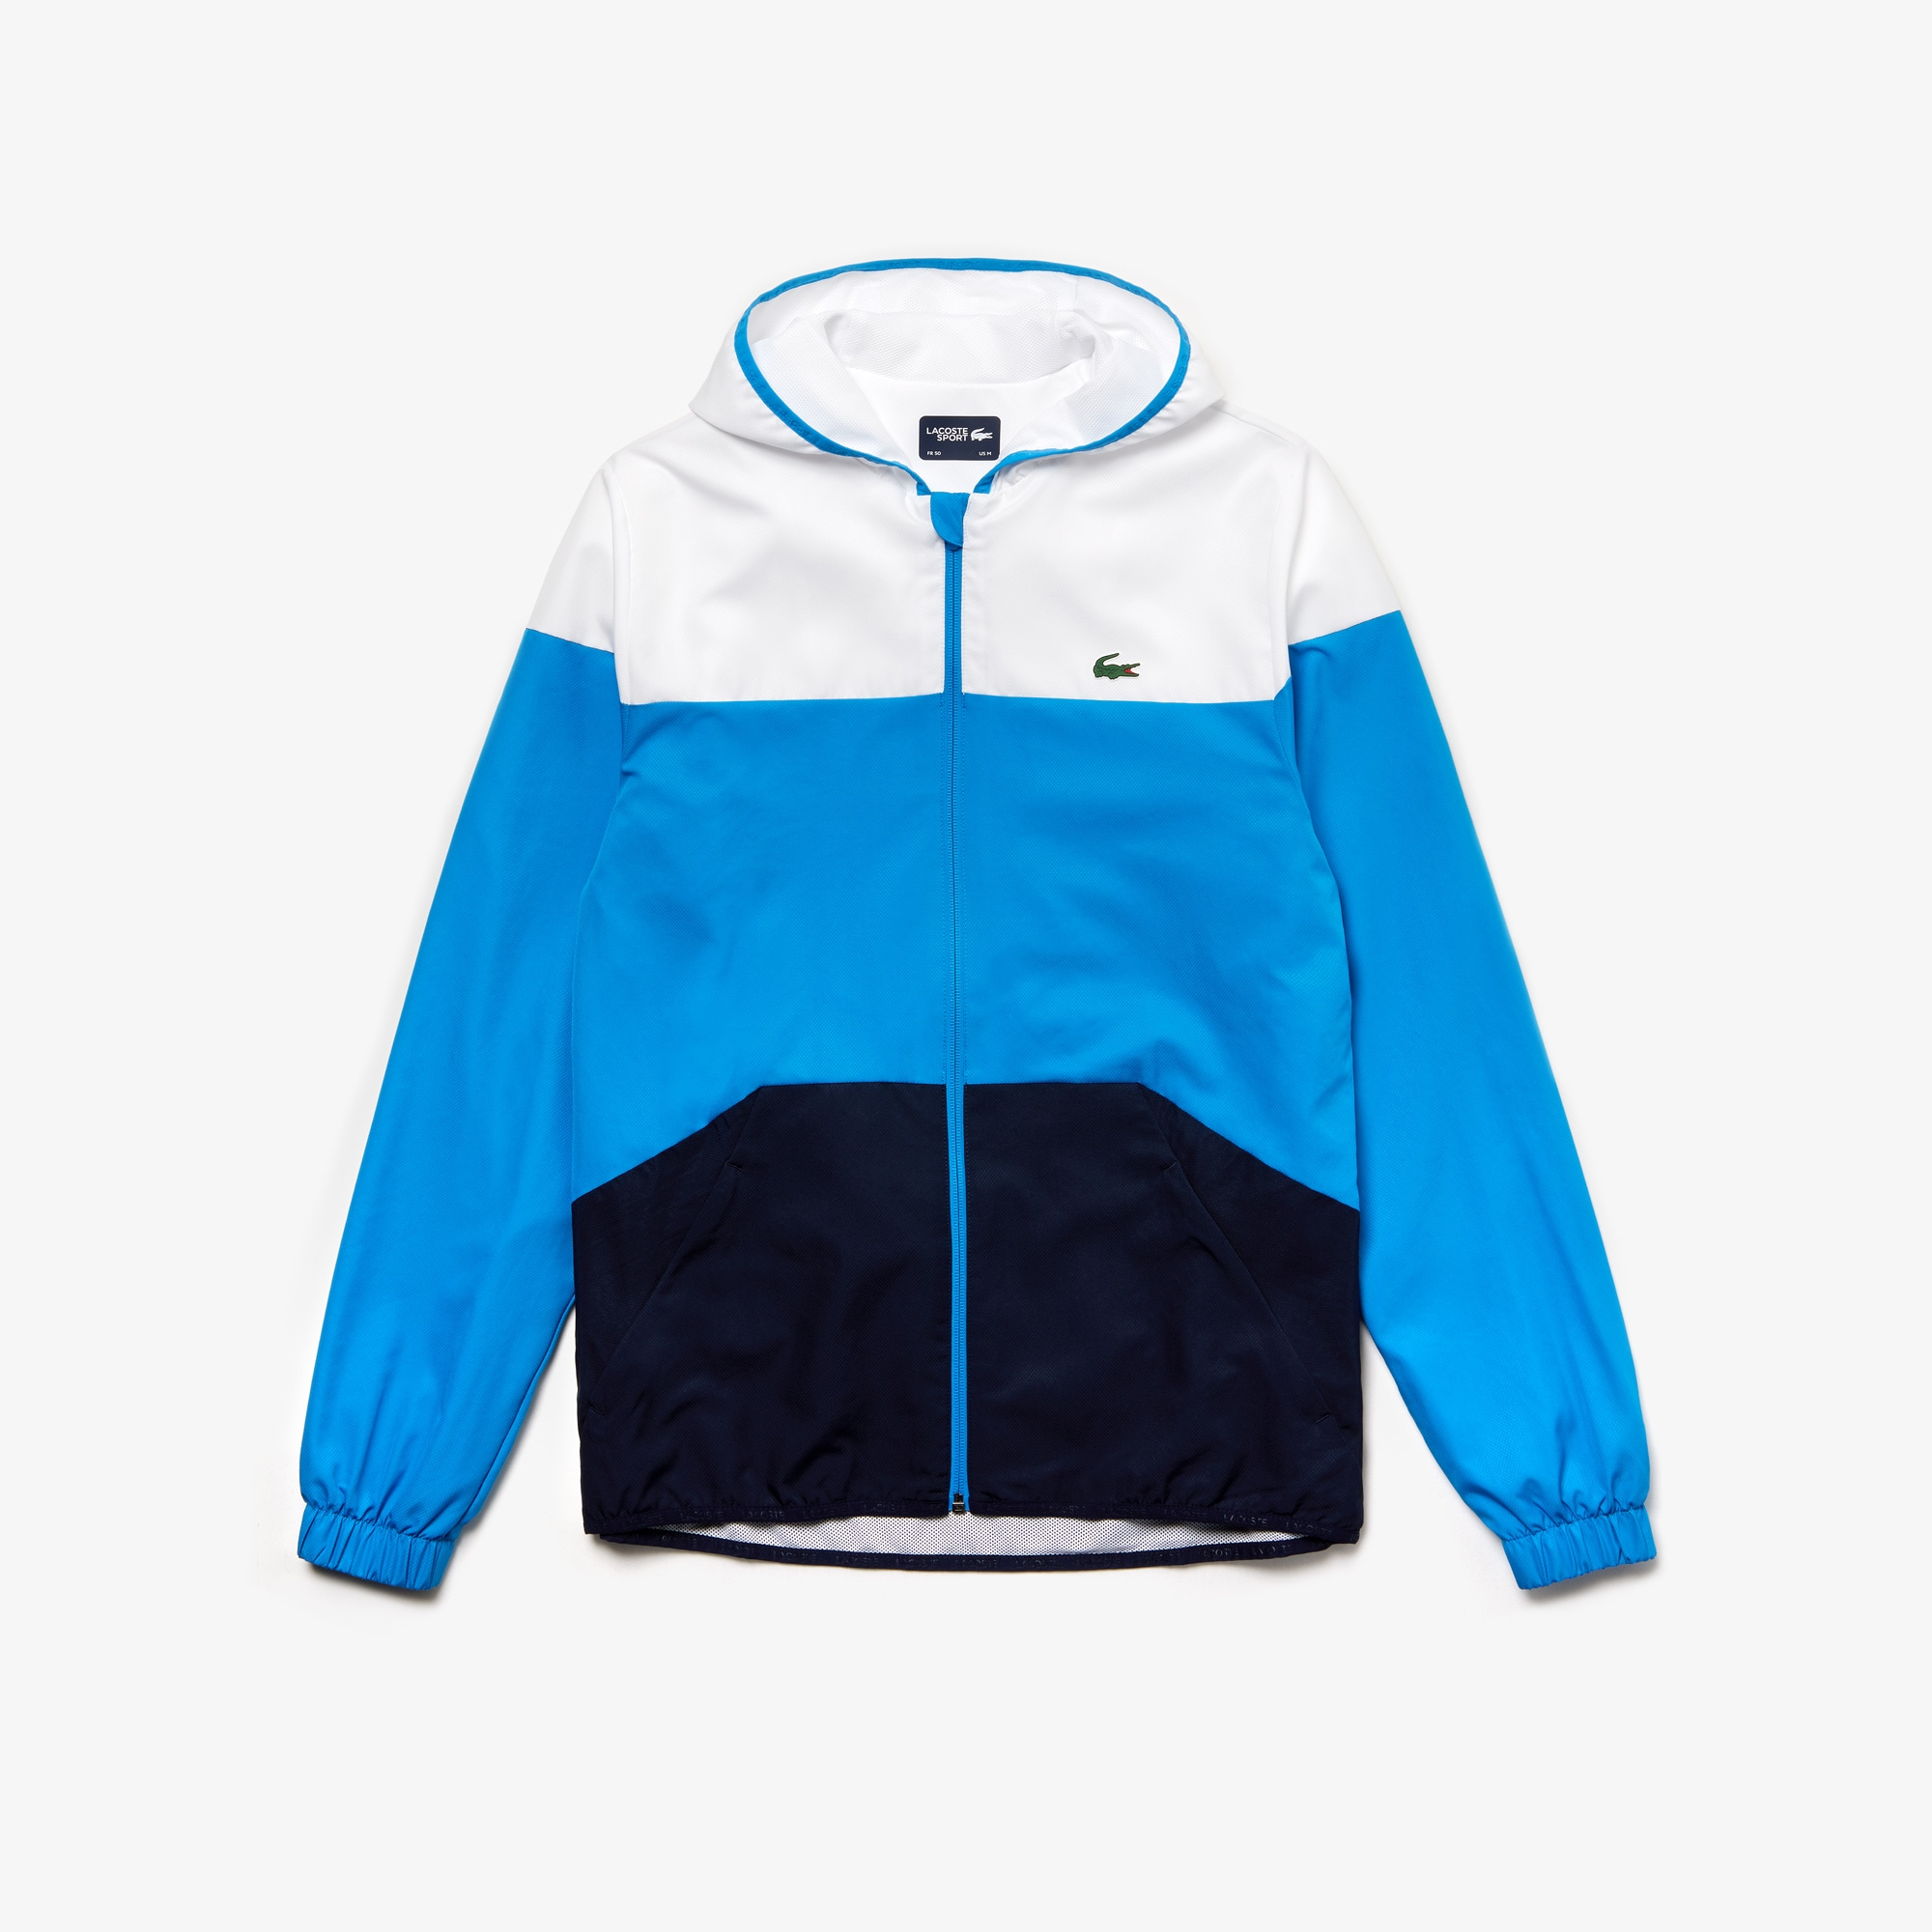 Men's Lacoste SPORT Hooded Colourblock Tennis Jacket